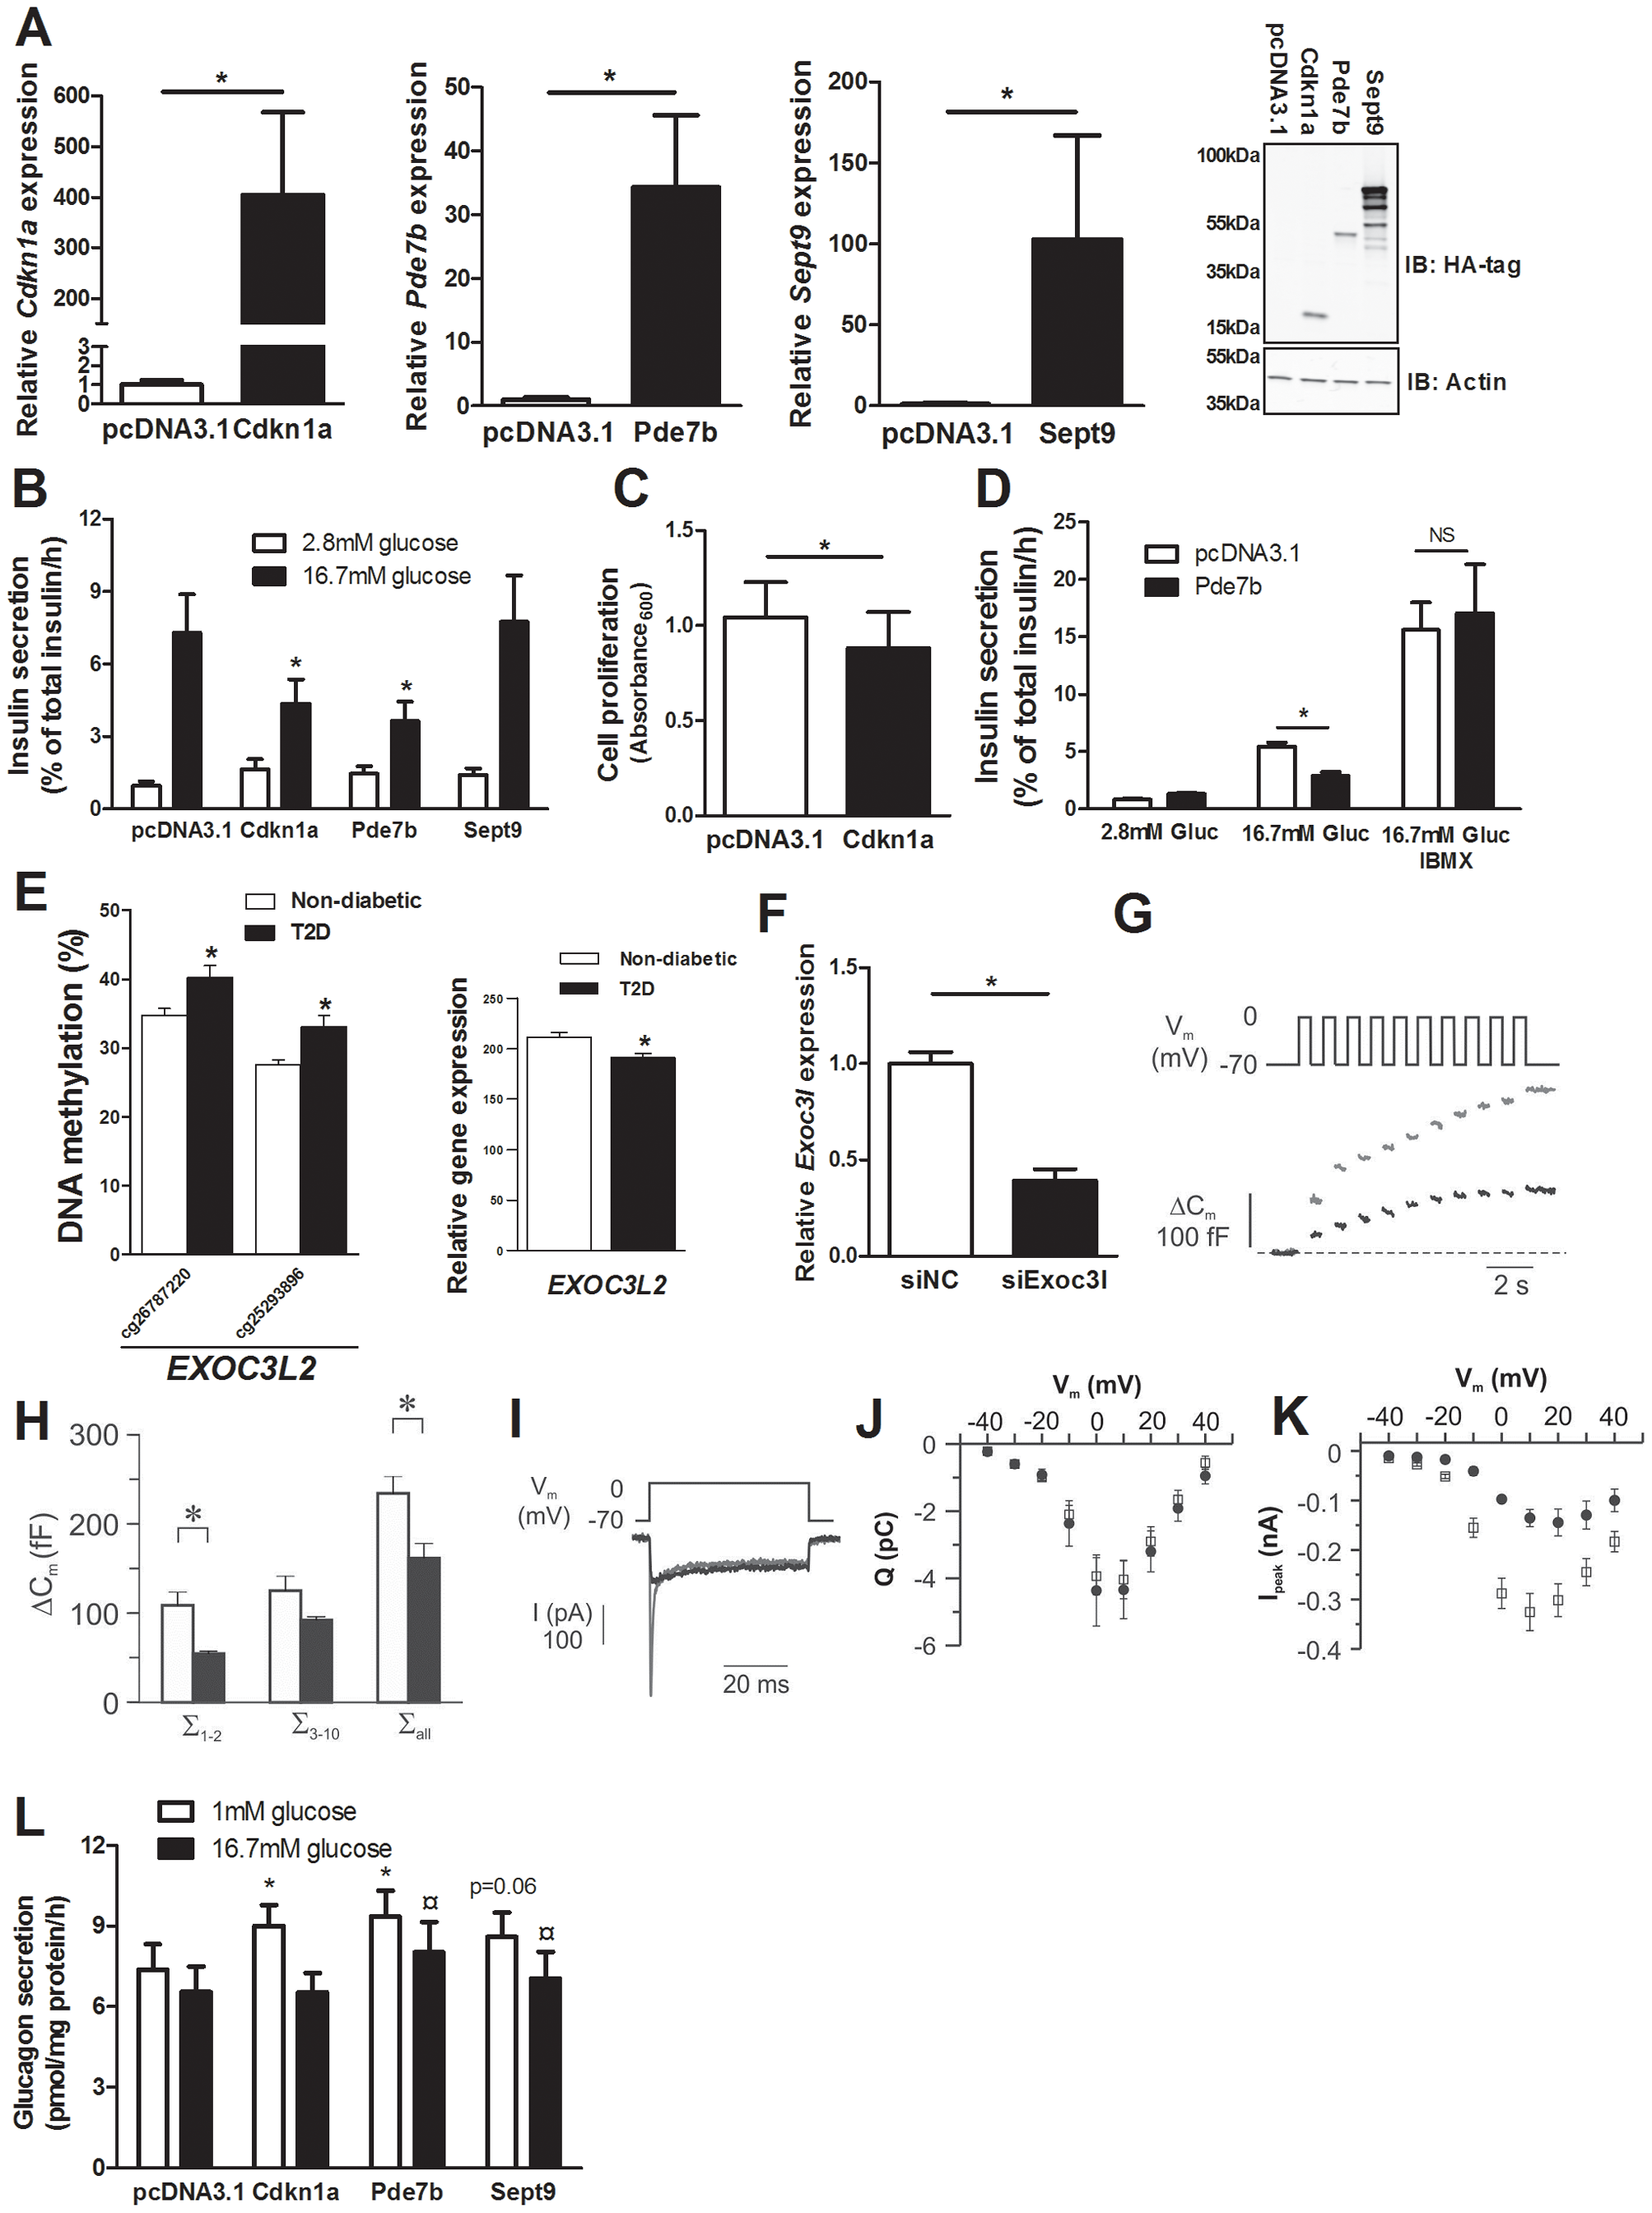 Impact of Cdkn1a, Pde7b, Sept9 and Exoc3l on clonal β- and α-cells.